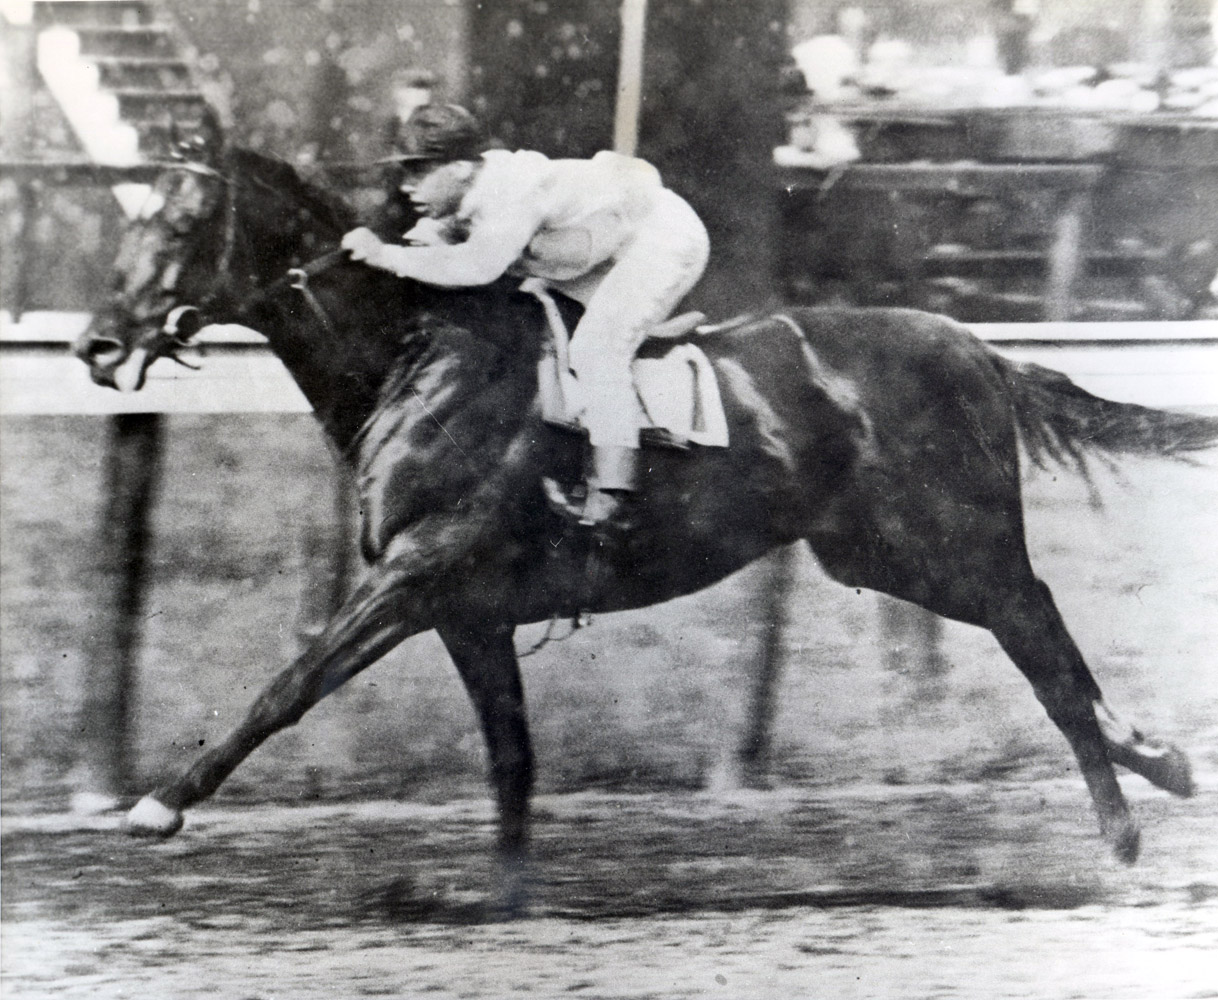 Whisk Broom II (Joe Notter up) racing in the 1913 Brooklyn Handicap at Belmont, his second race and second win in America (Museum Collection)